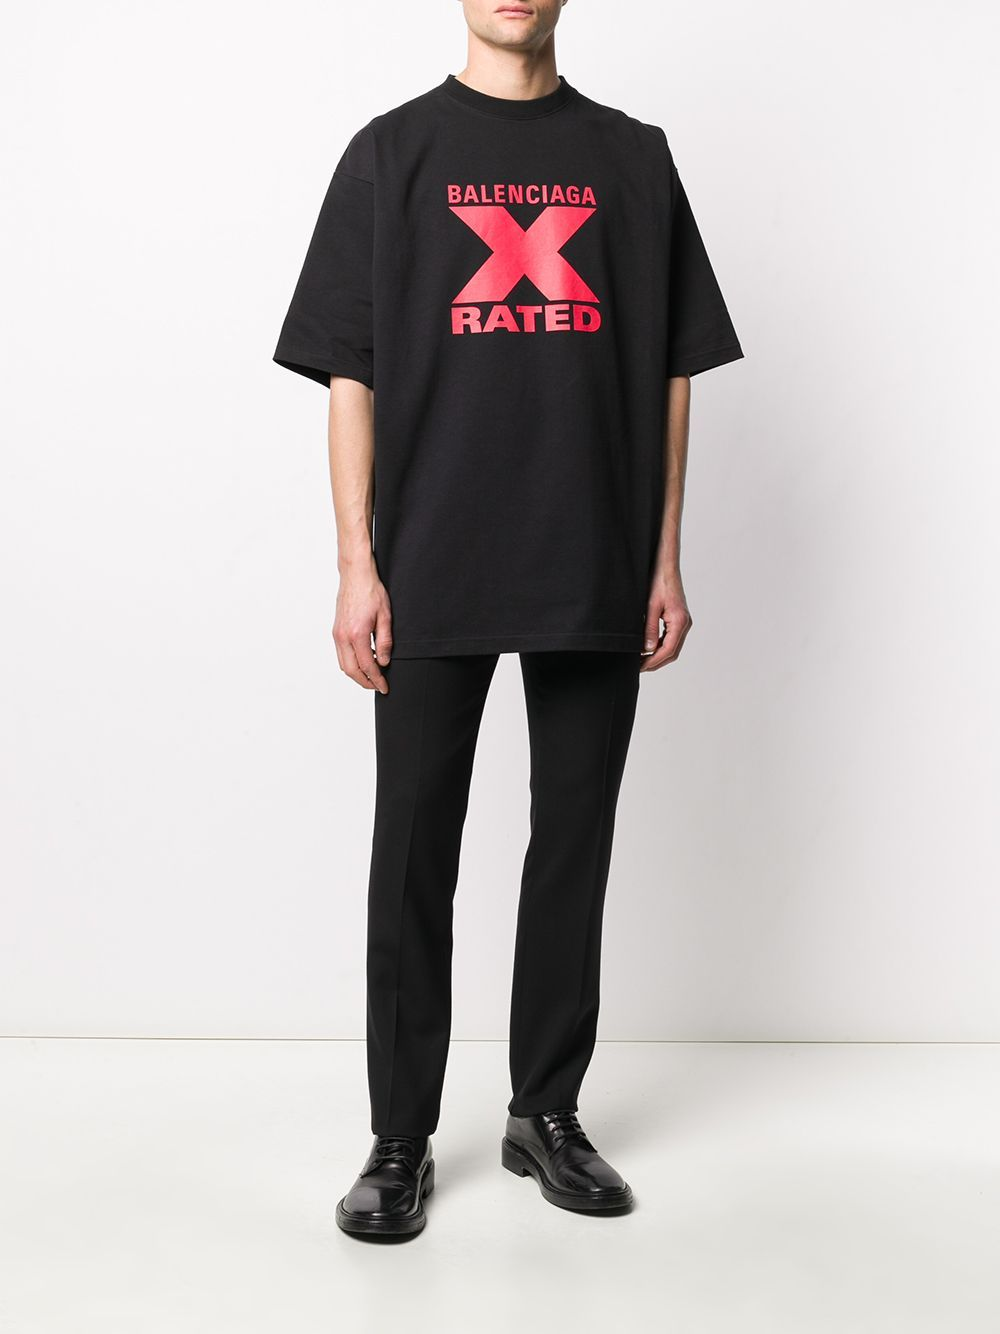 BALENCIAGA x rated t-shirt black/red